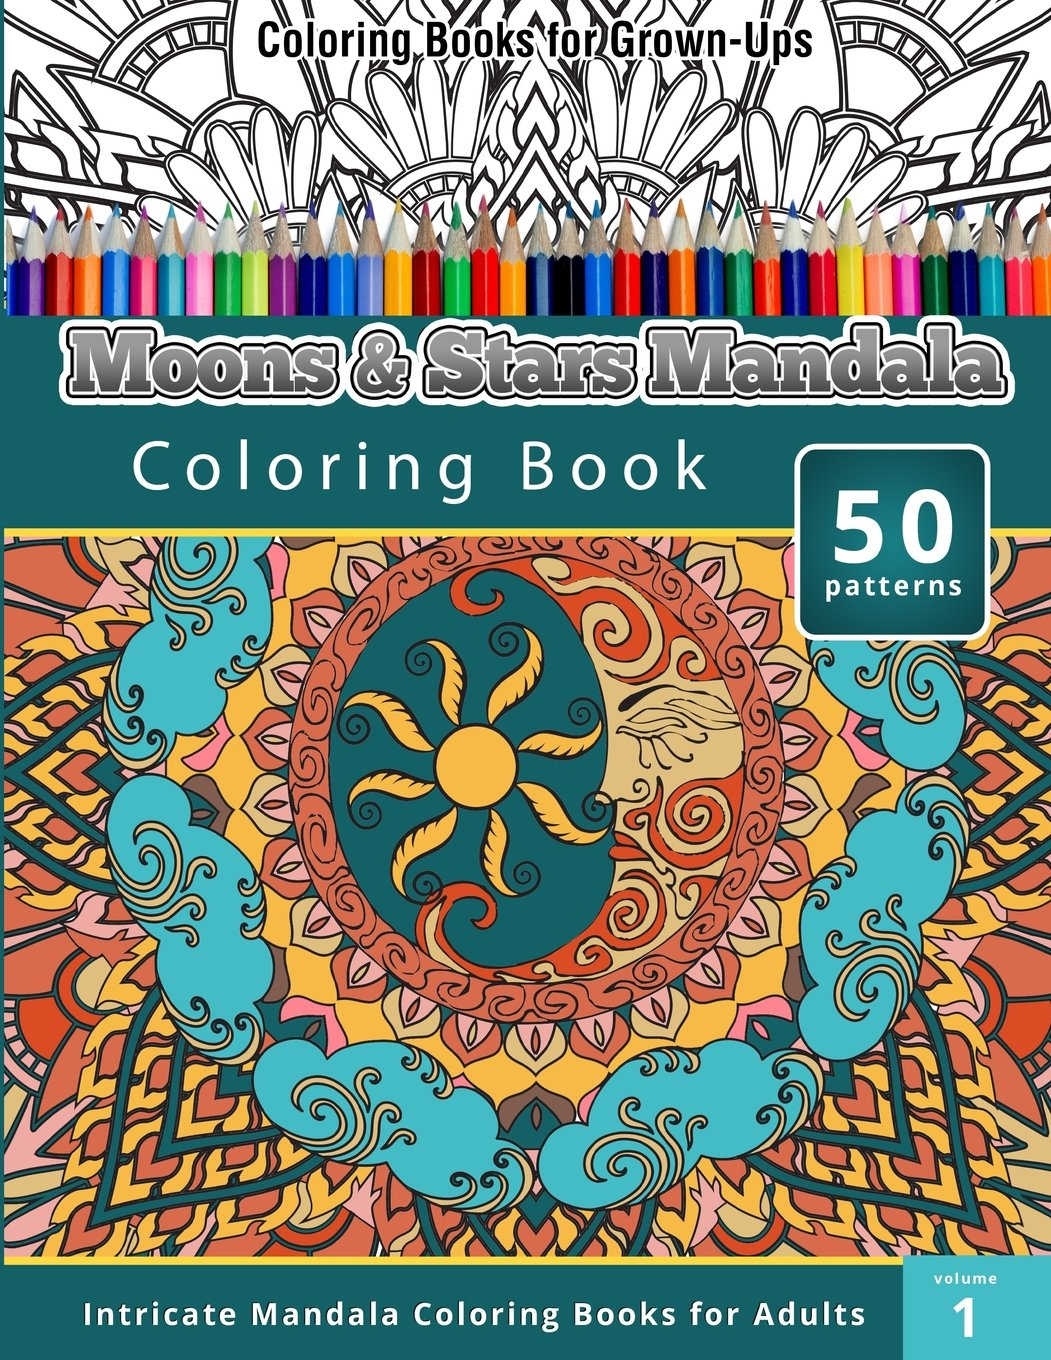 Amazon Coloring Book For Grown Ups Moons Stars Mandala 9781508811787 Chiquita Publishing Books